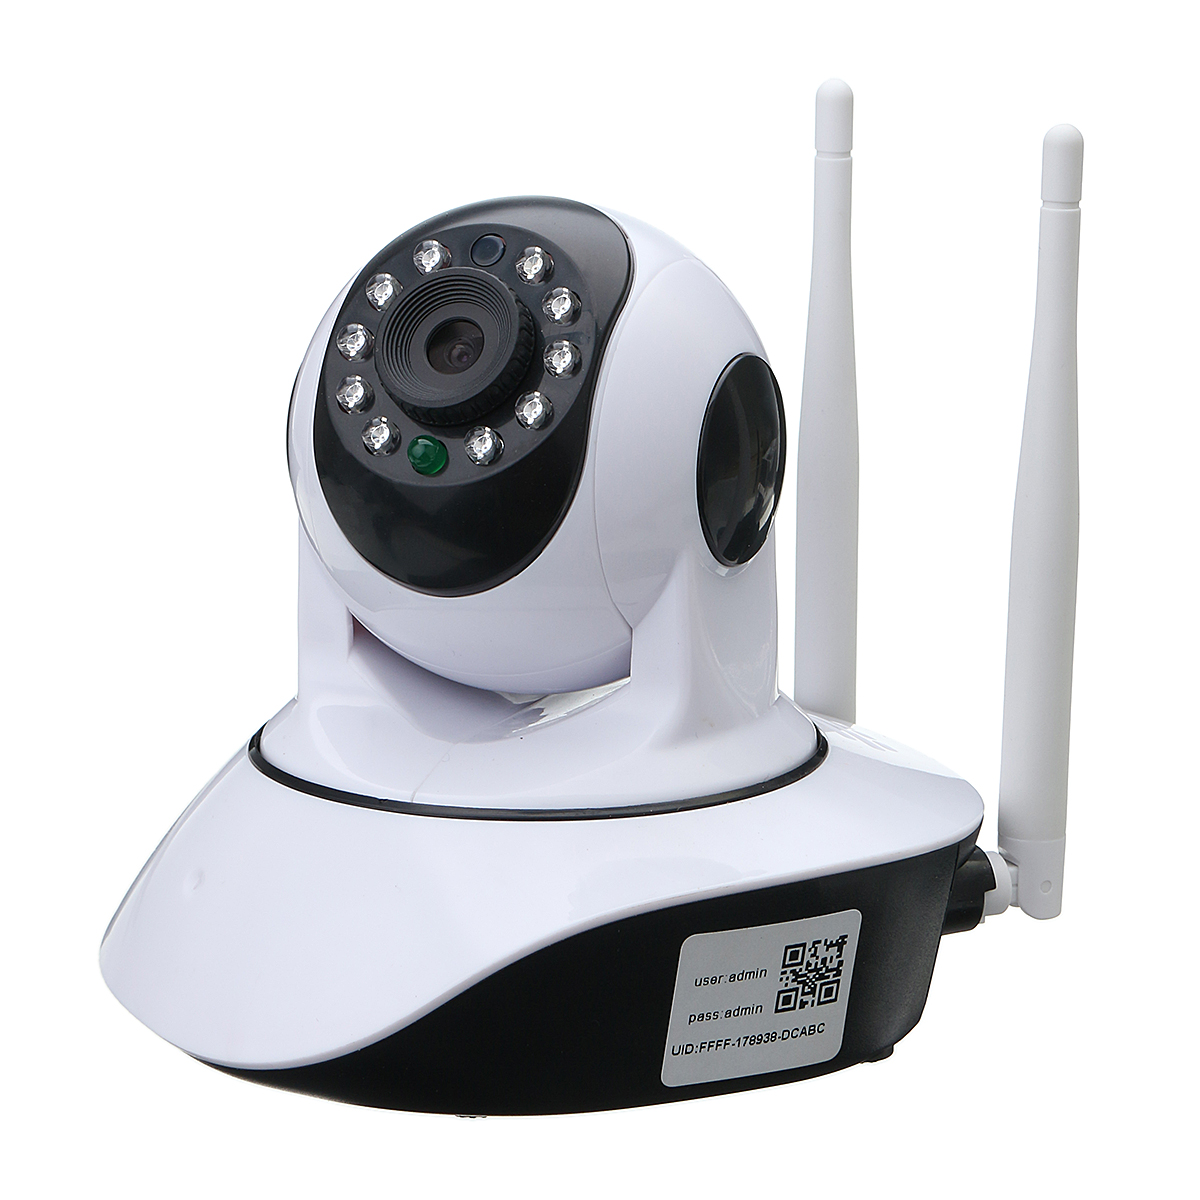 cctv camera for home, security camera kuwait